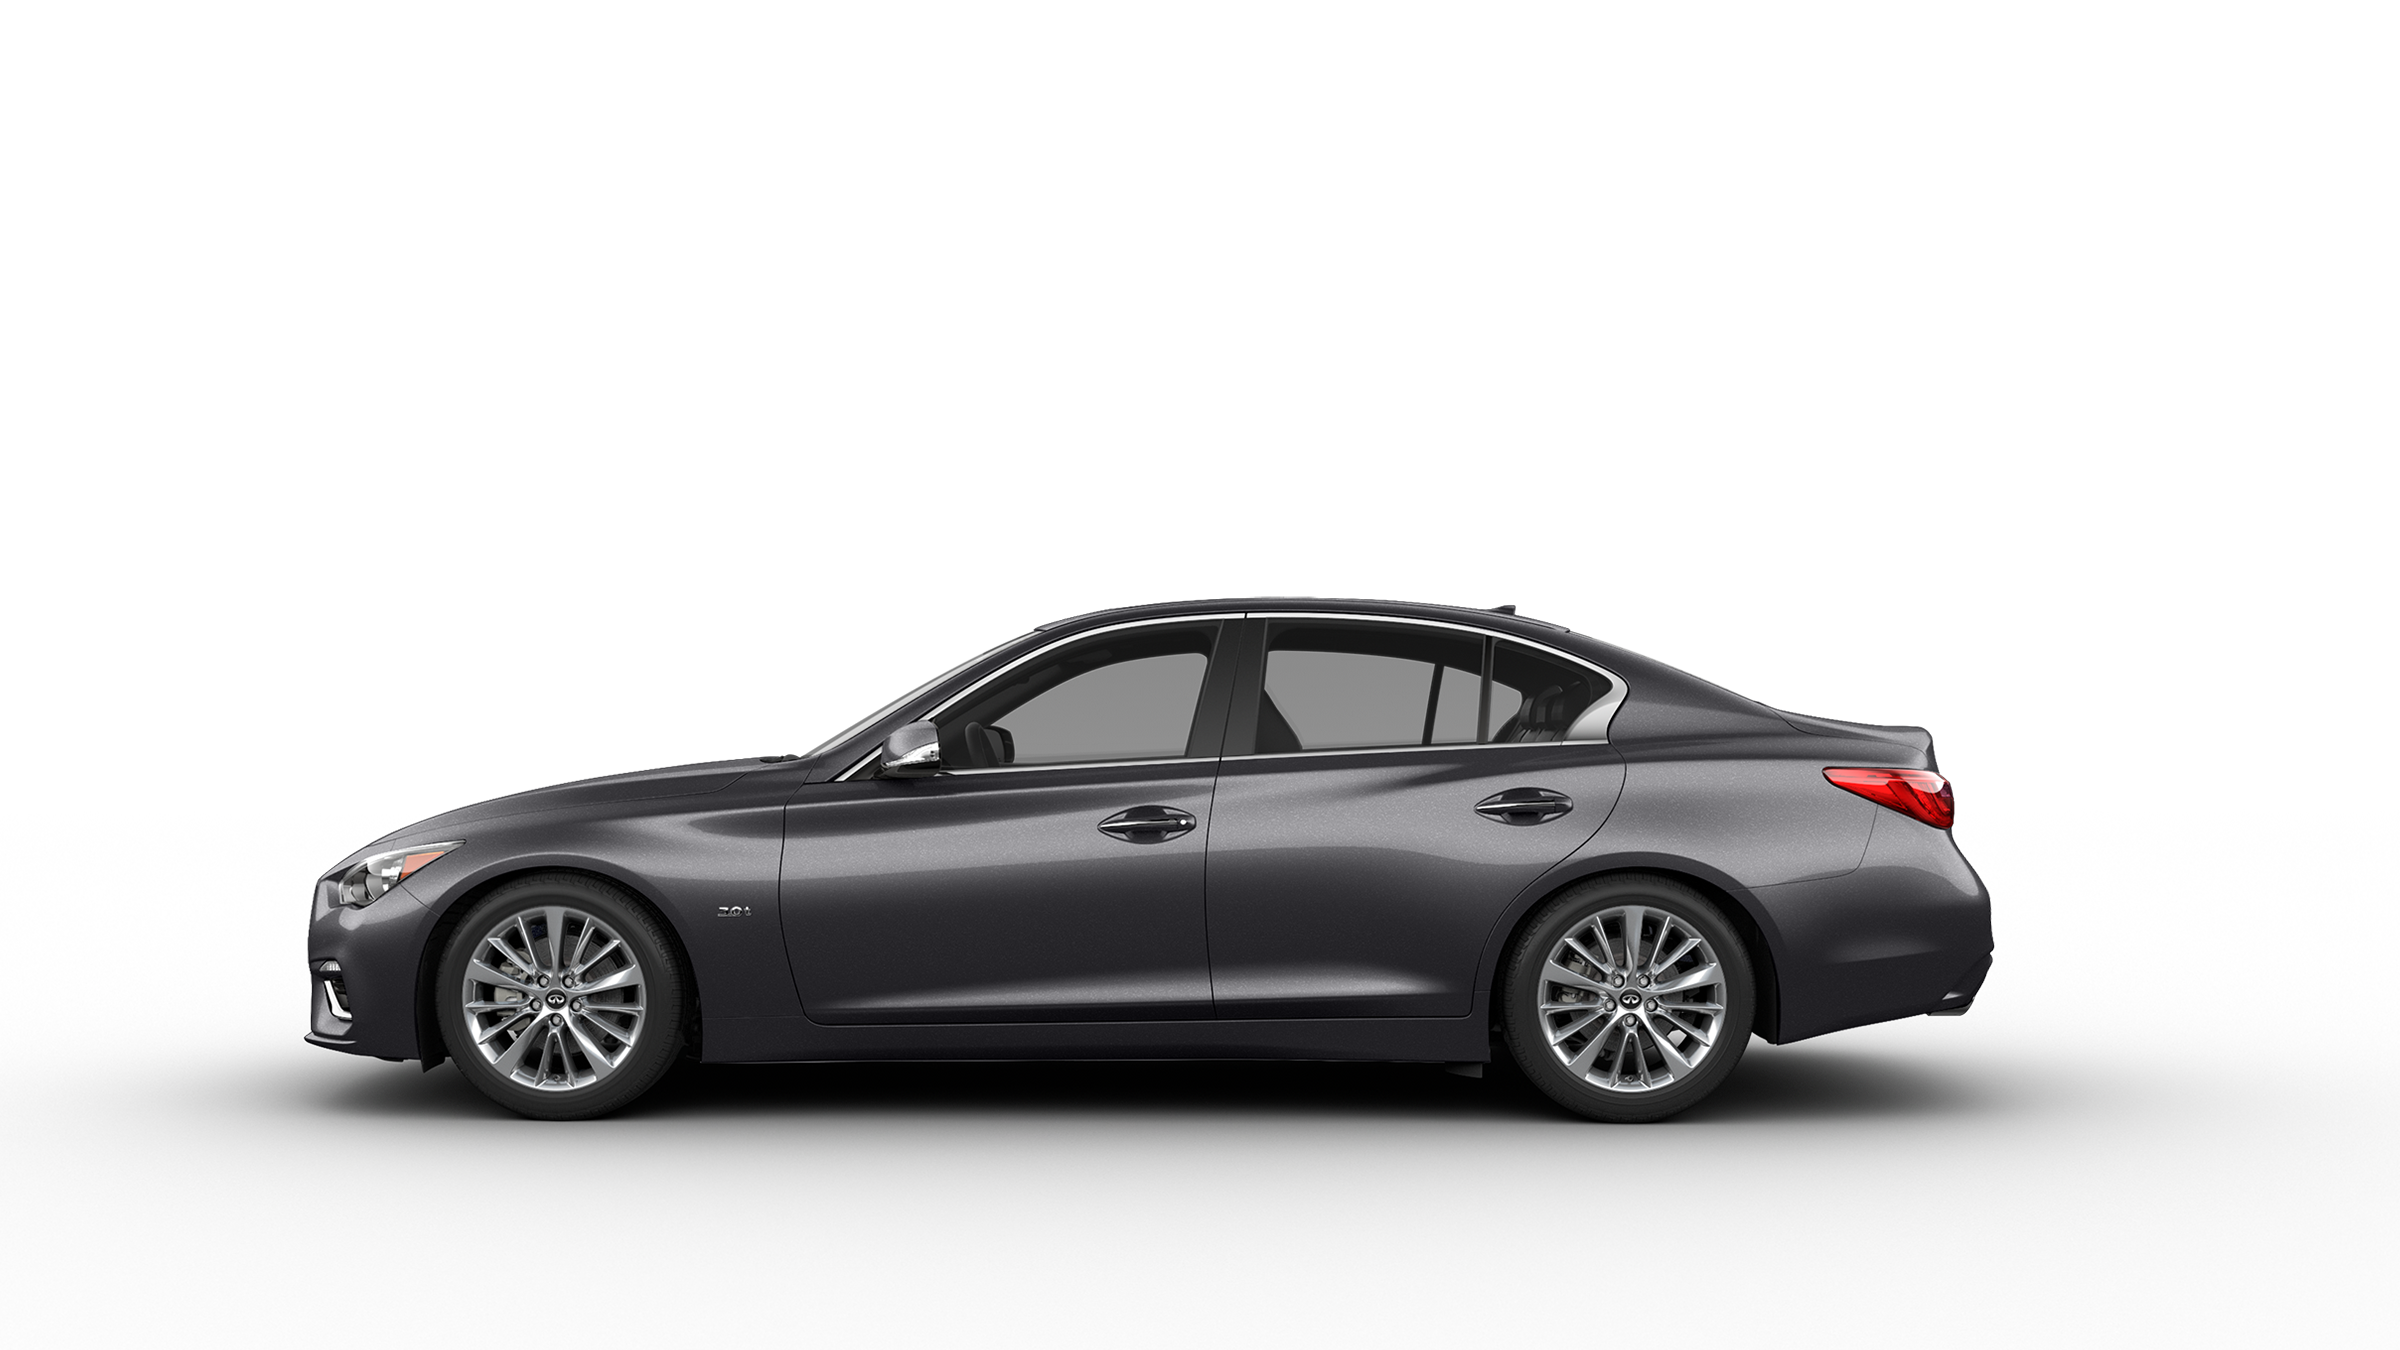 2019 INFINITI Q50 Vehicle Photo in Dallas, TX 75209